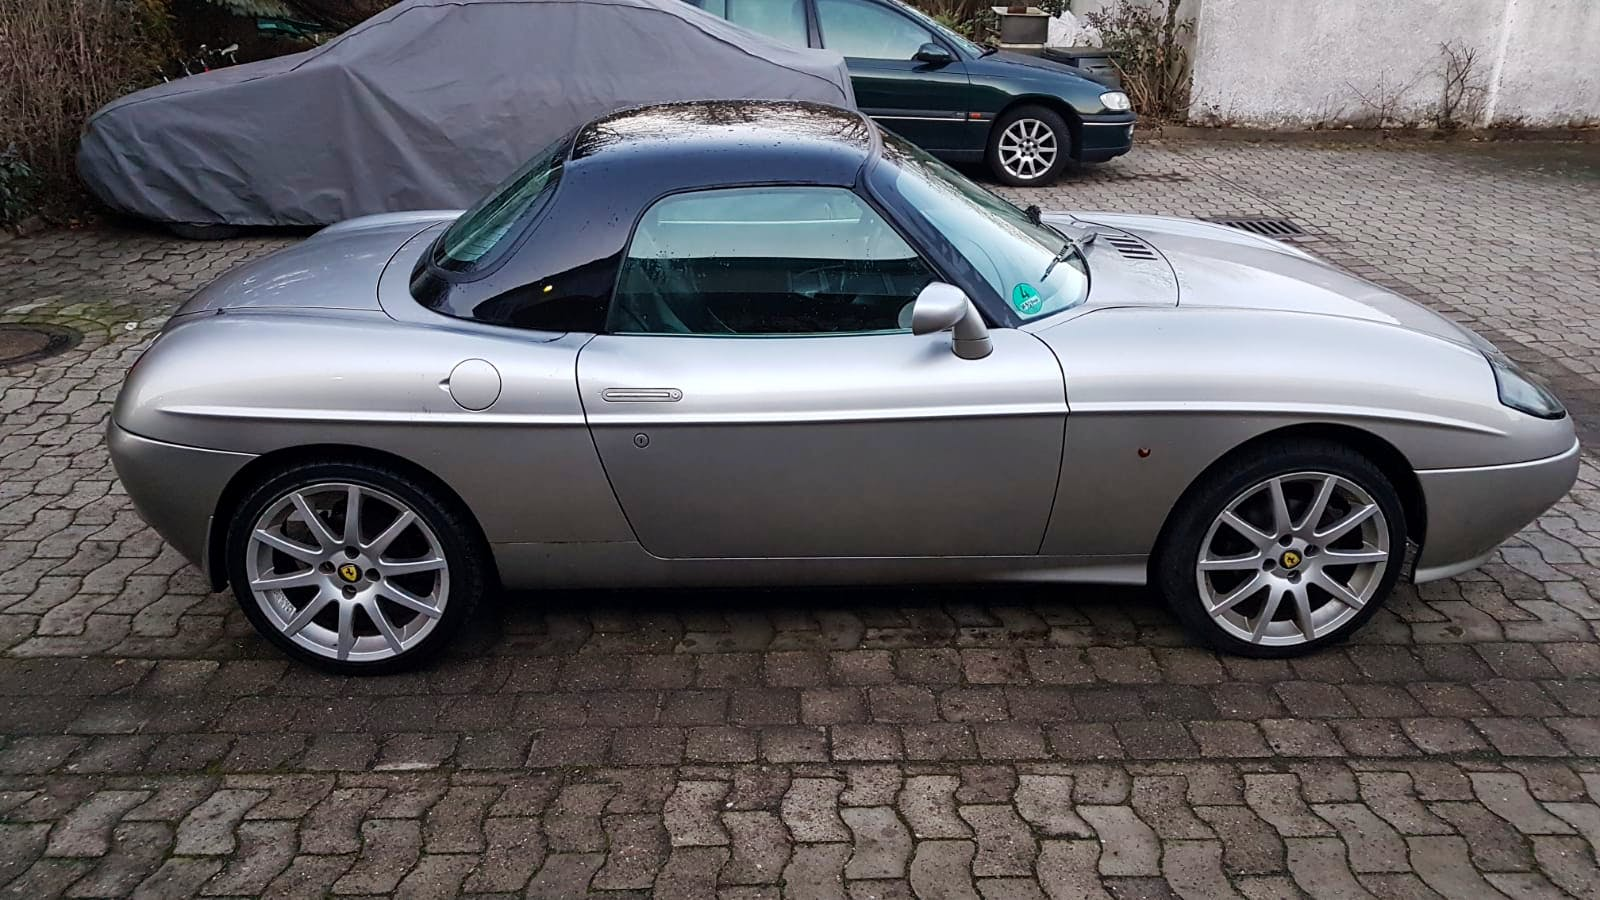 Fiat Barchetta 1.8 16V mit CD-Player